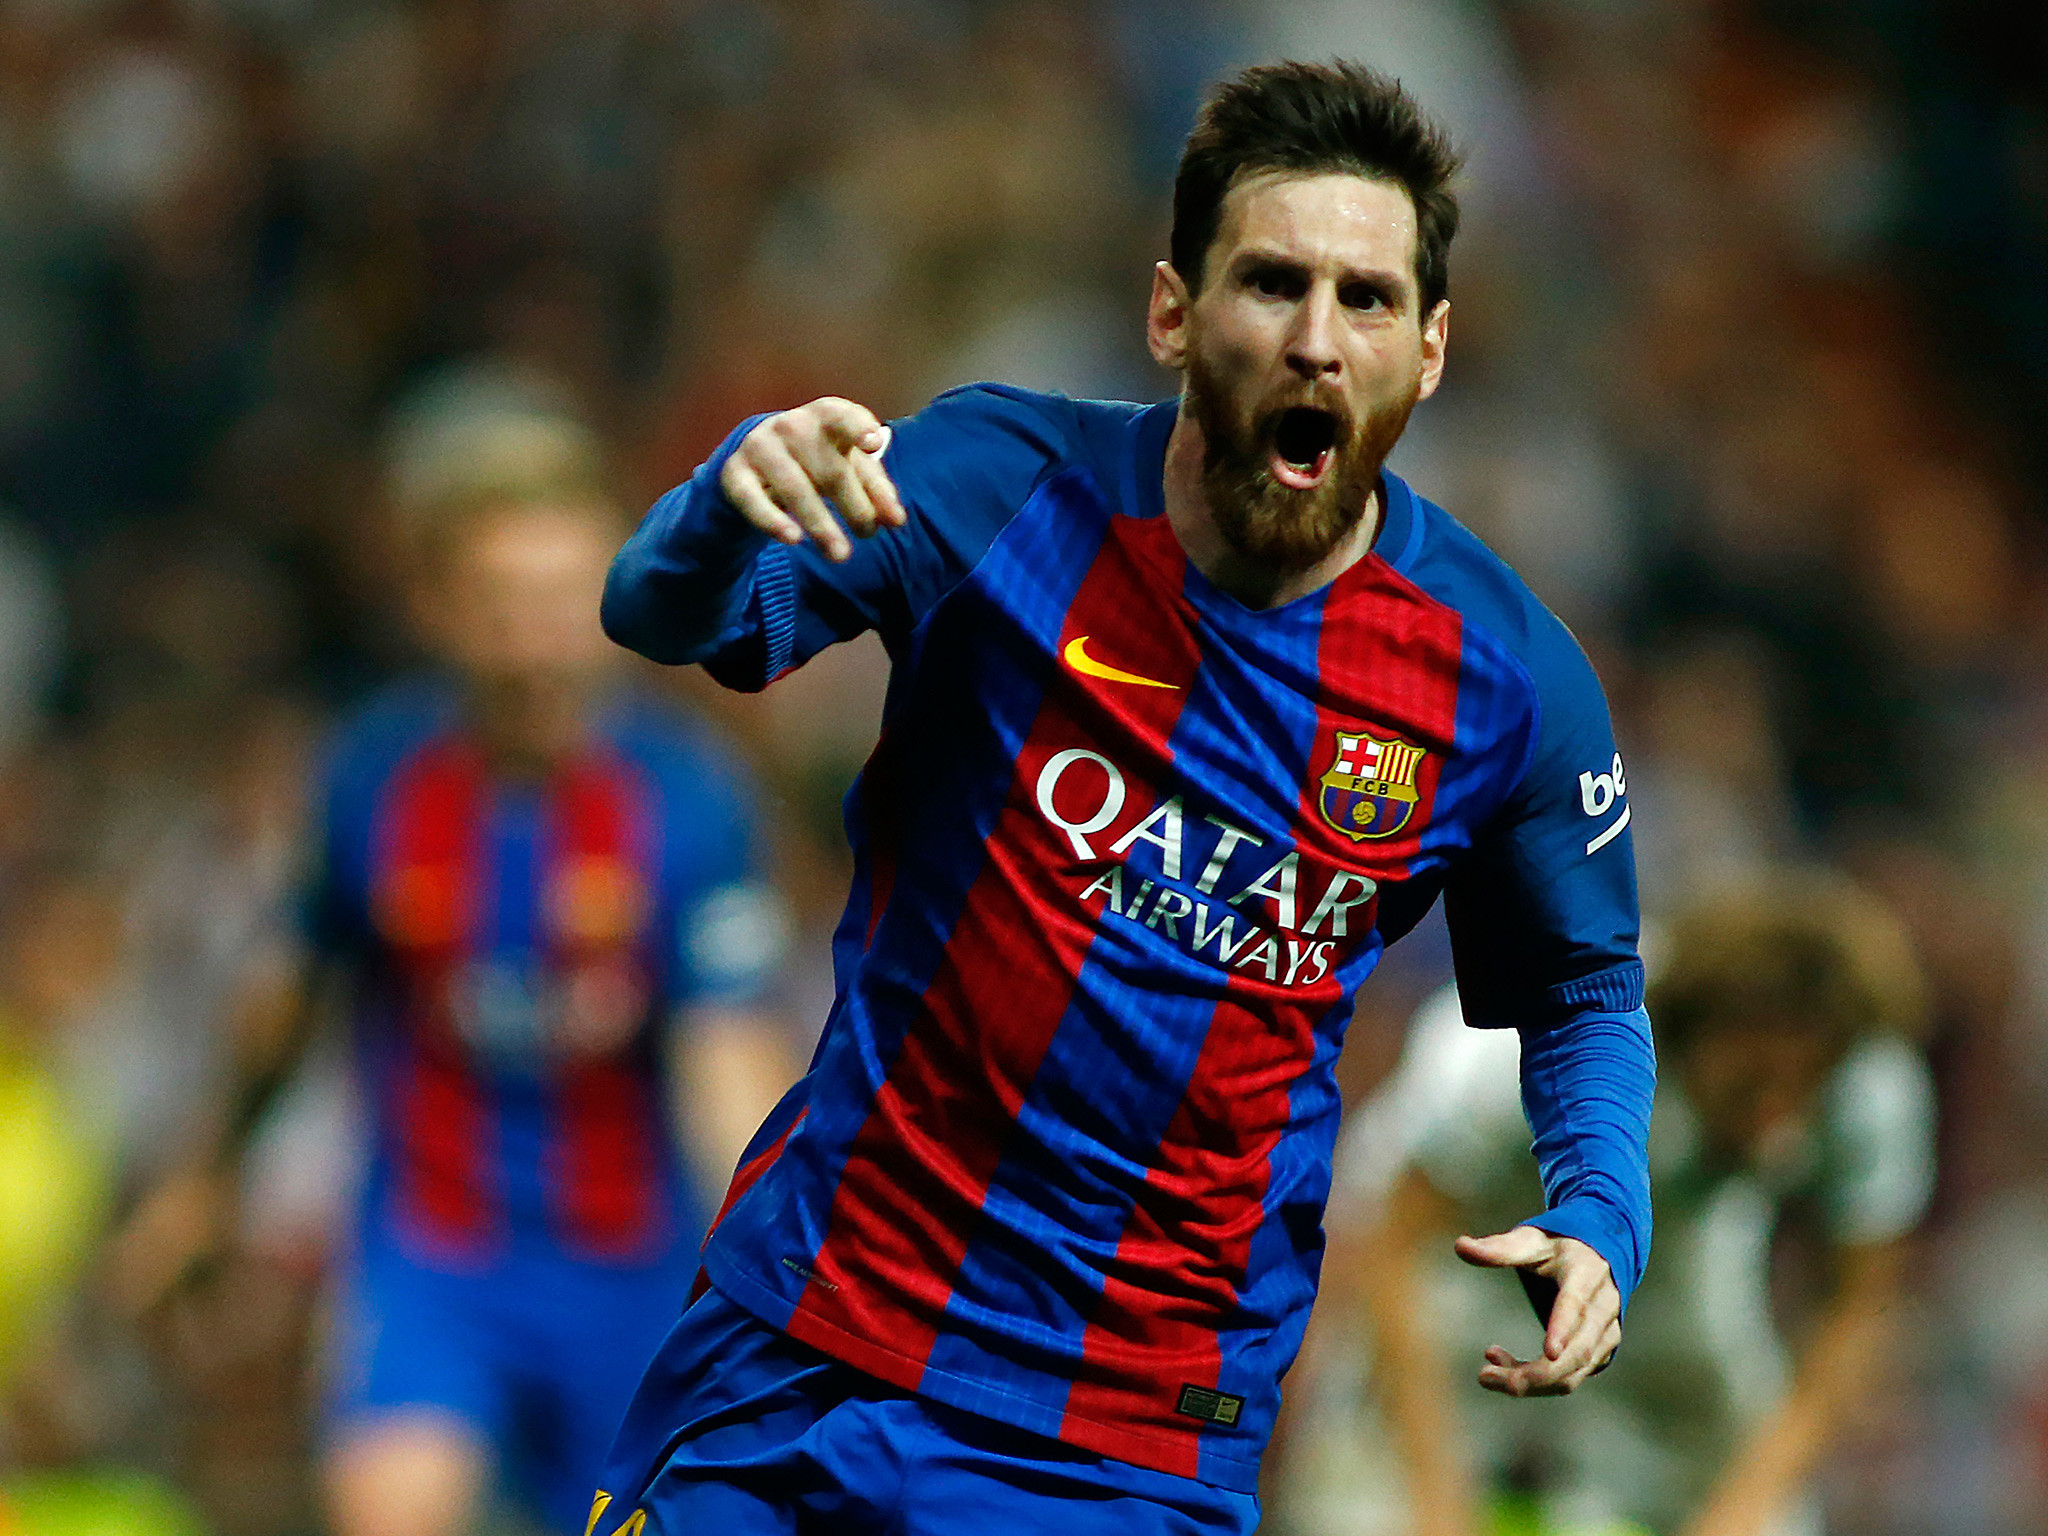 Leo Messi Messi Hd Wallpapers 1080p 2018 84 43 Images